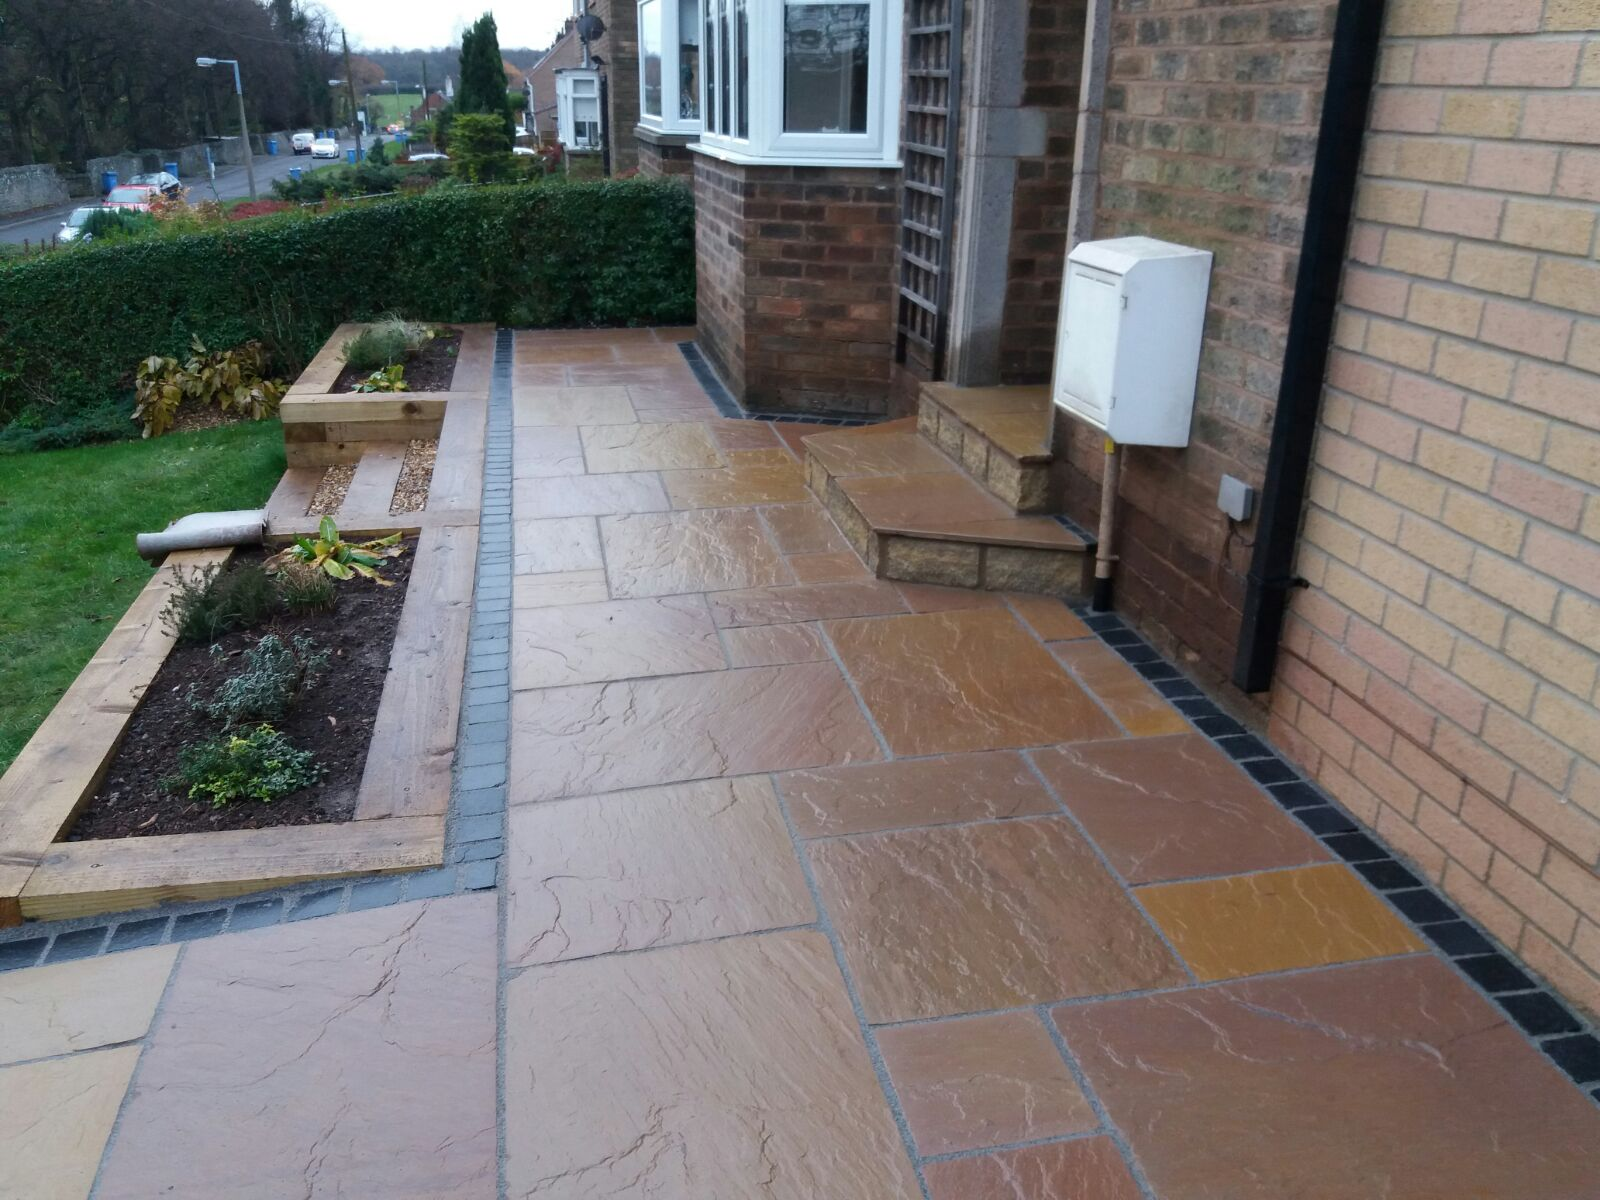 Landscape Gardeners Sheffield Landscaping sheffield landscape gardeners central paving landscape gardeners workwithnaturefo